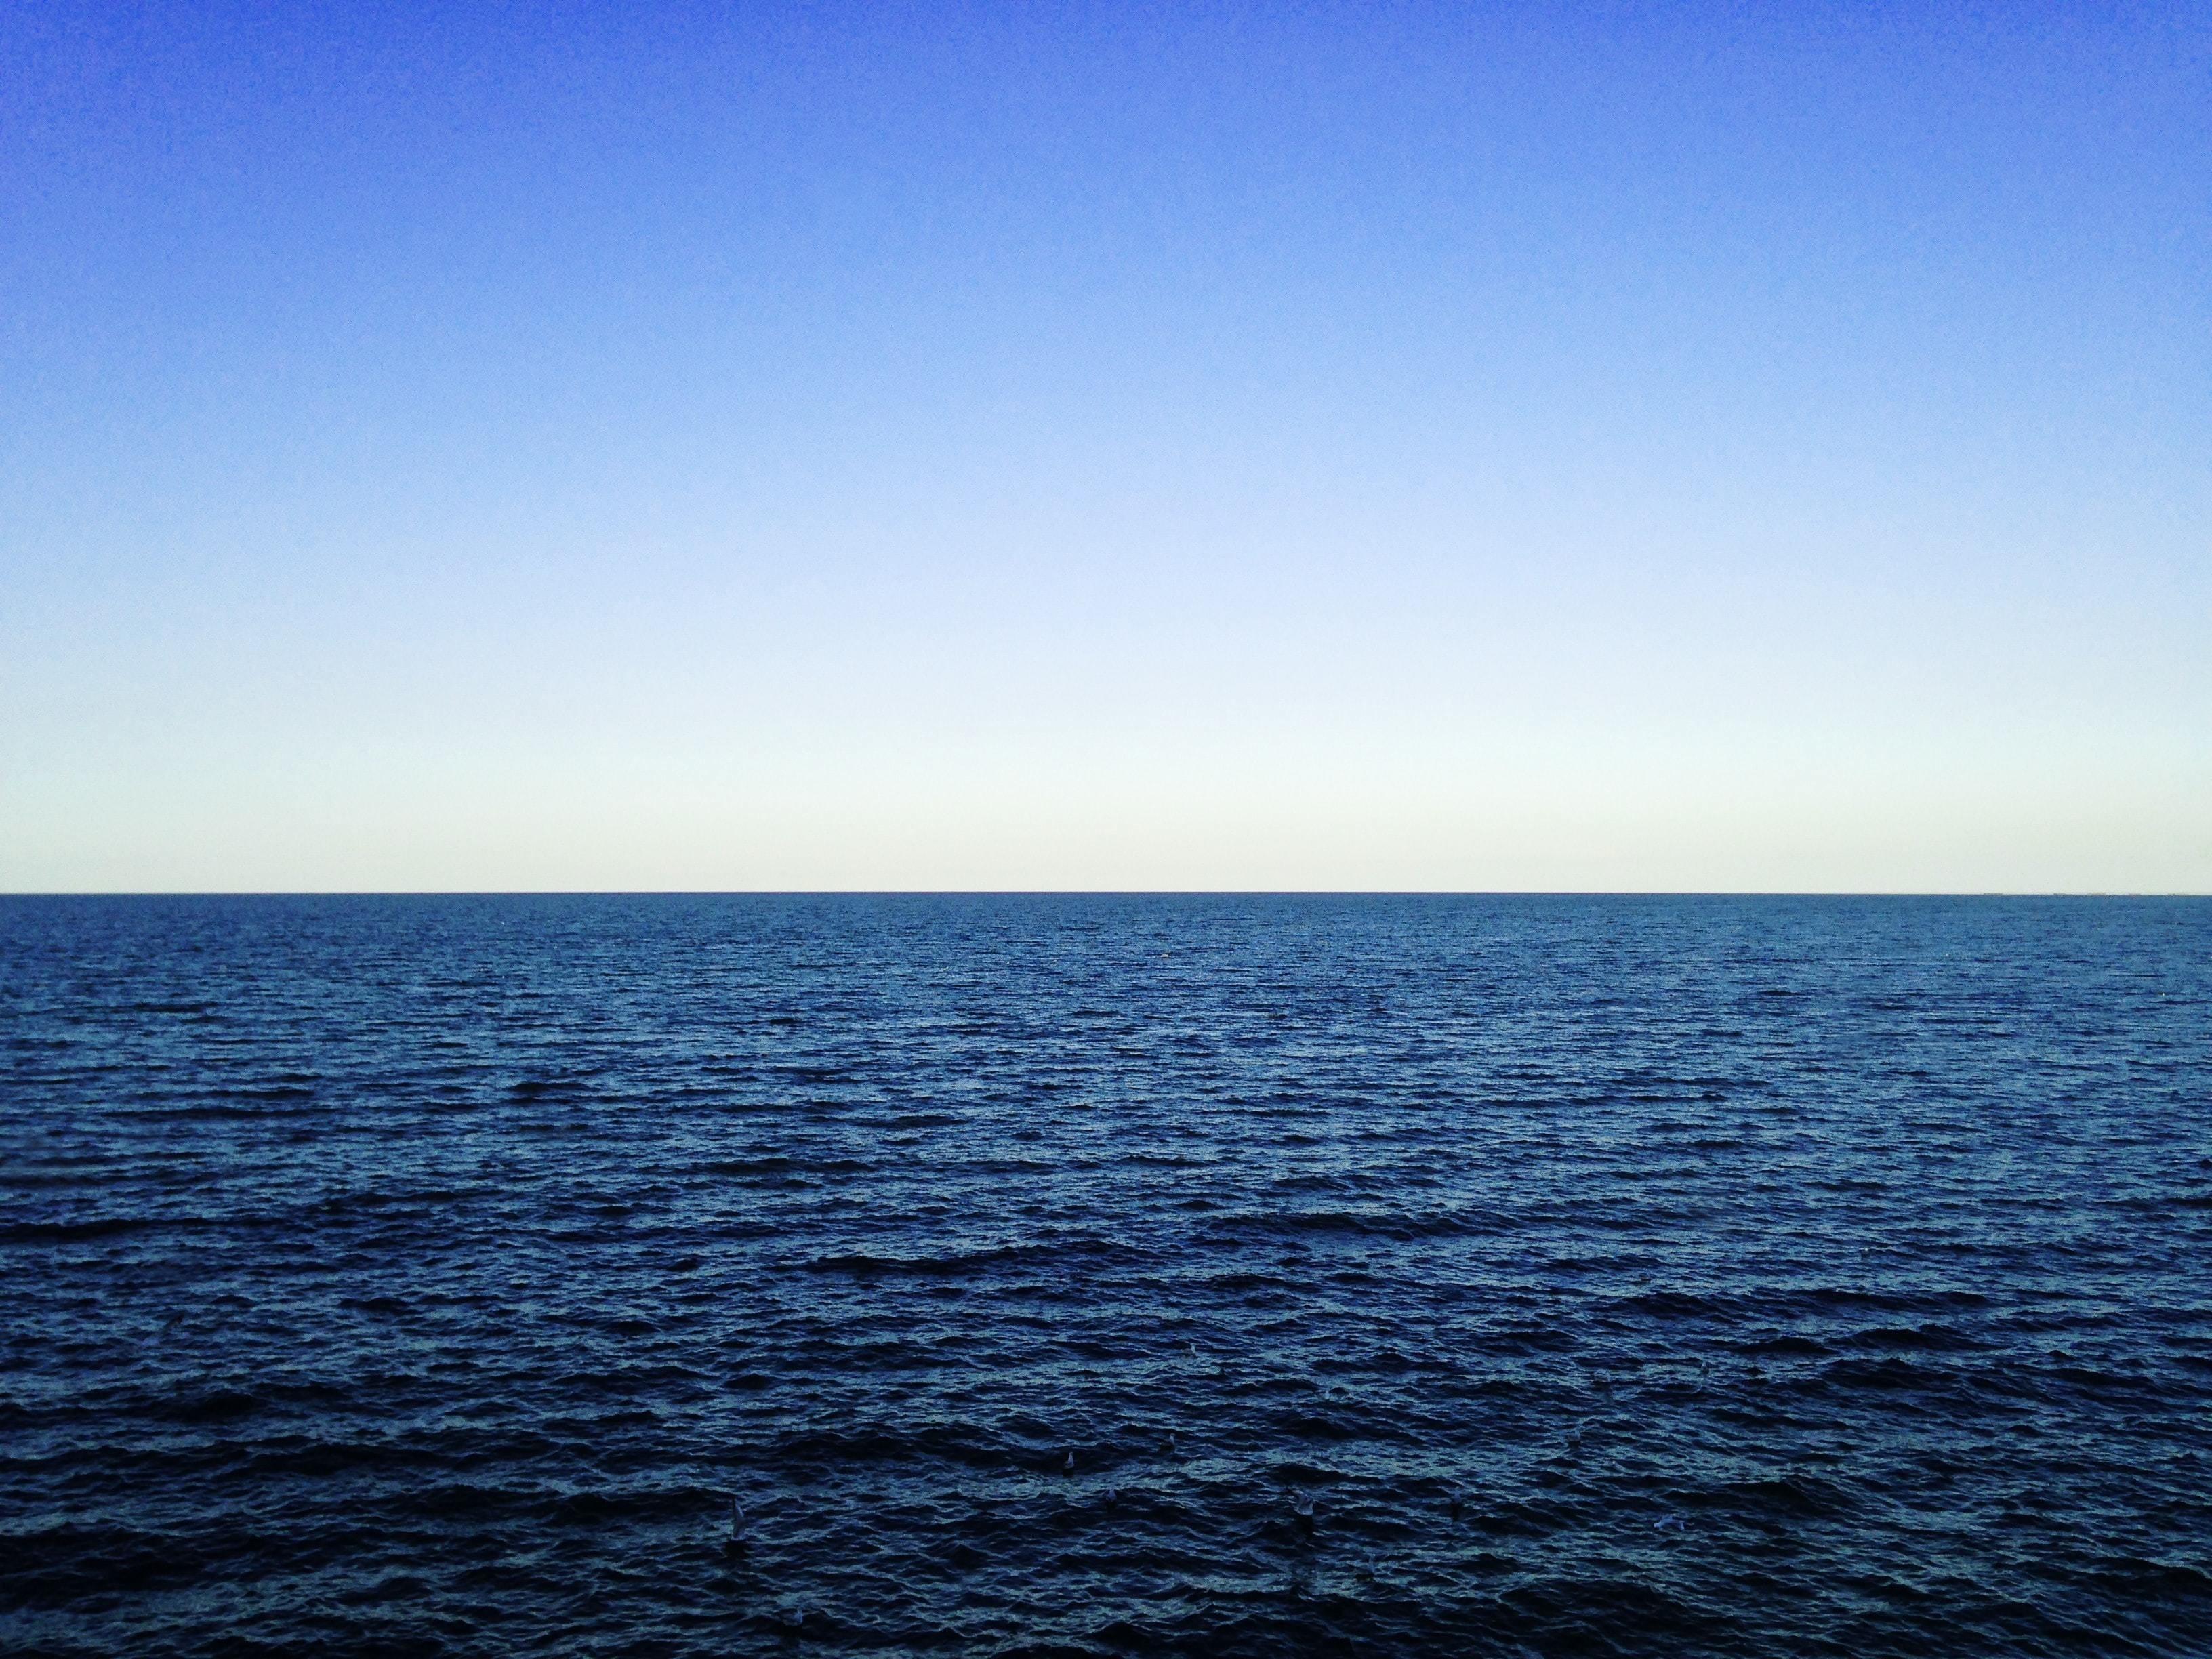 image of an ocean. Heat rising from the ocean can create a problematic heat dome, like the one in North America